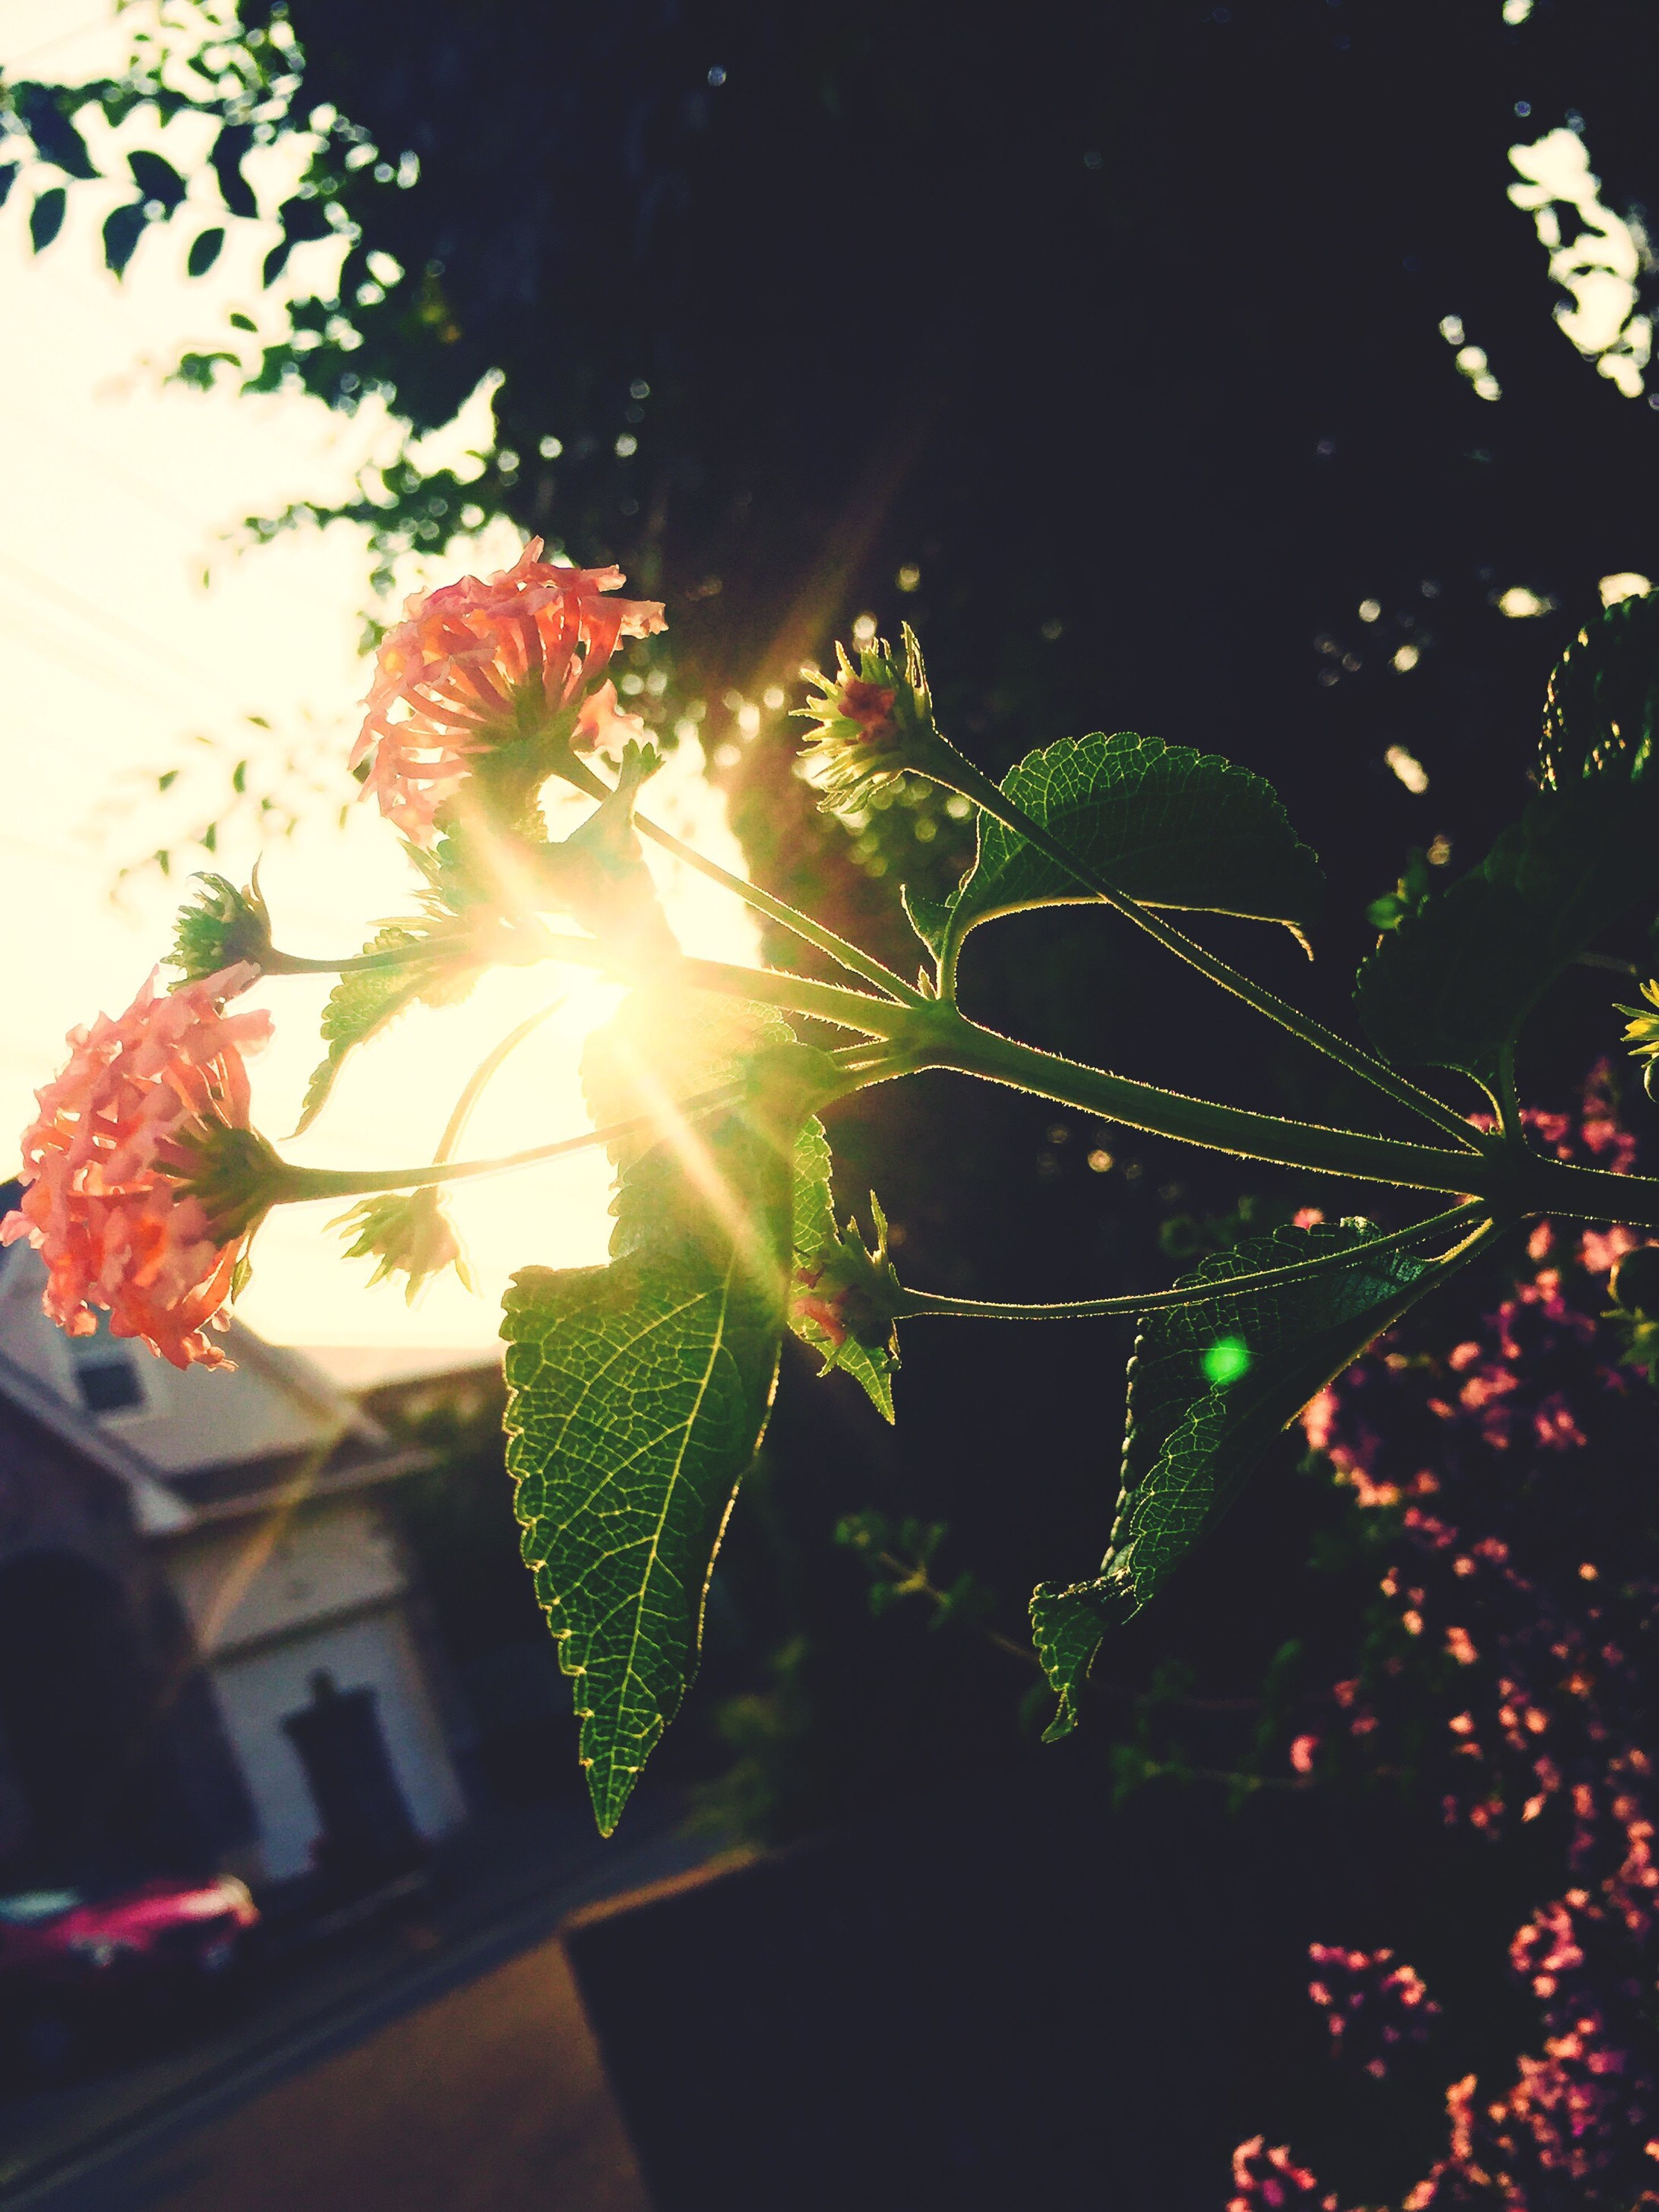 growth, illuminated, flower, night, plant, leaf, nature, beauty in nature, fragility, green color, lens flare, decoration, outdoors, no people, close-up, pink color, glowing, growing, multi colored, sunbeam, tranquility, botany